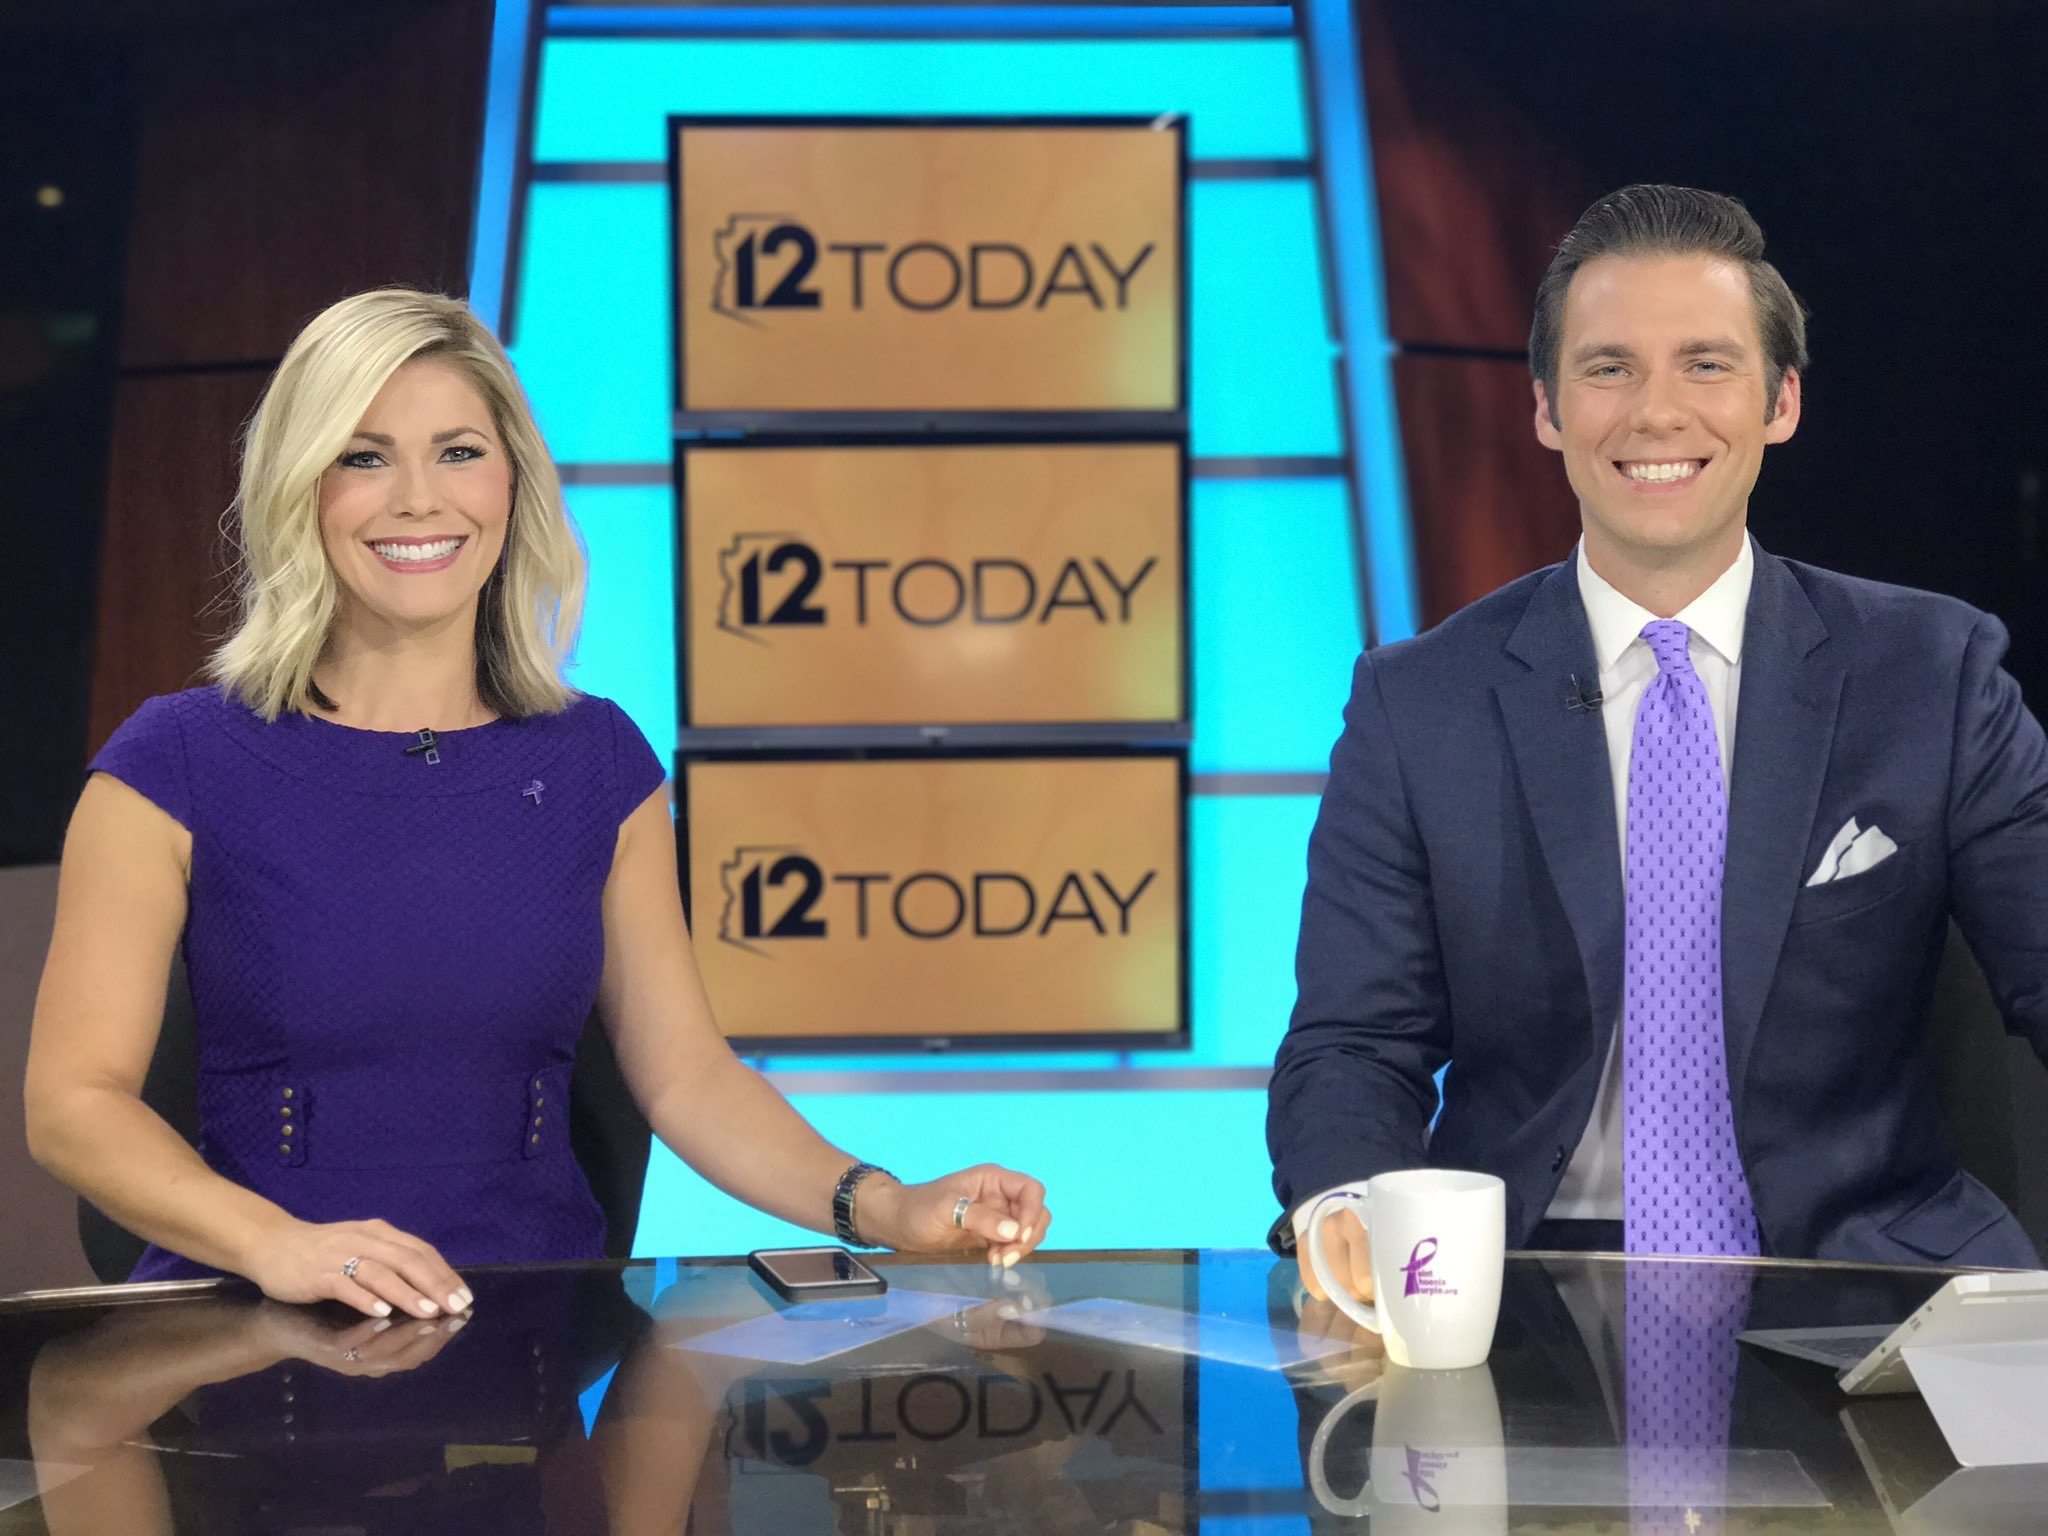 Channel 12 News Anchors #PaintsPHXPurple